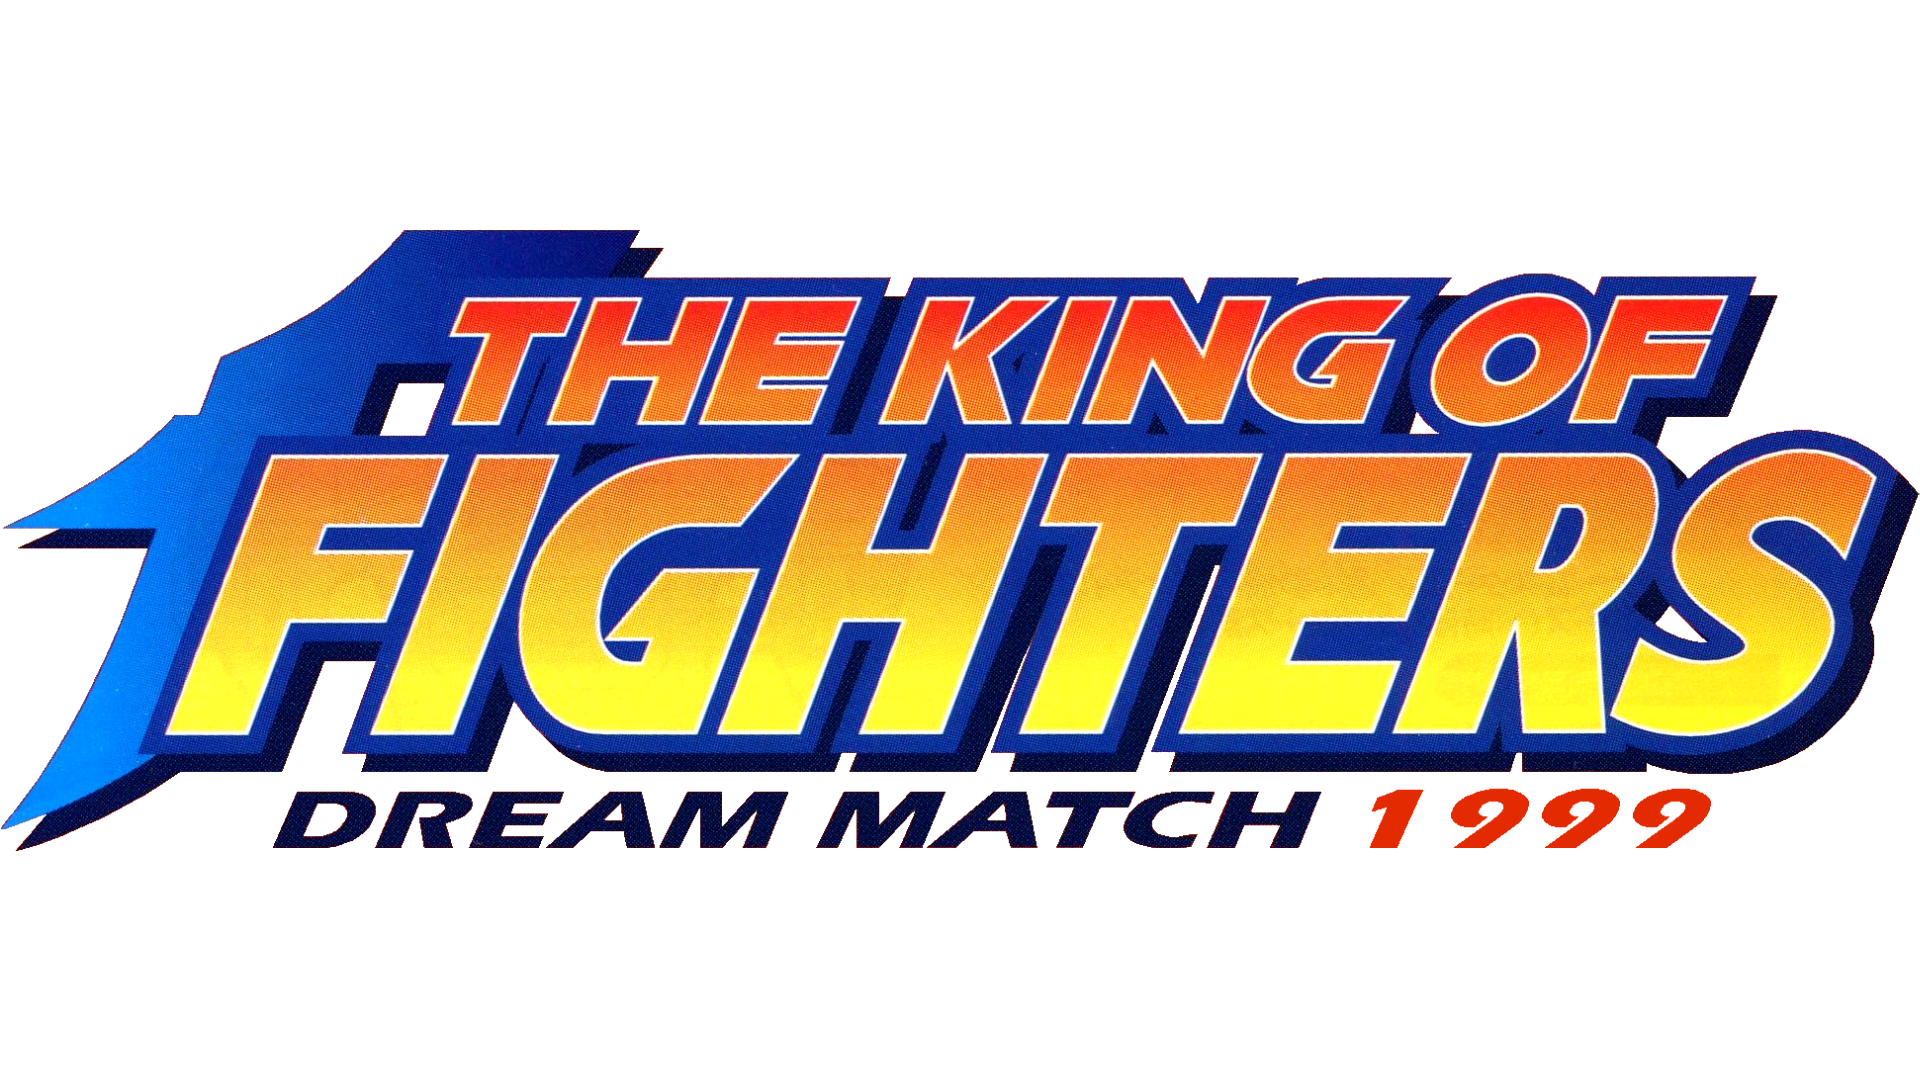 King of Fighters: Dream Match 1999 Logo